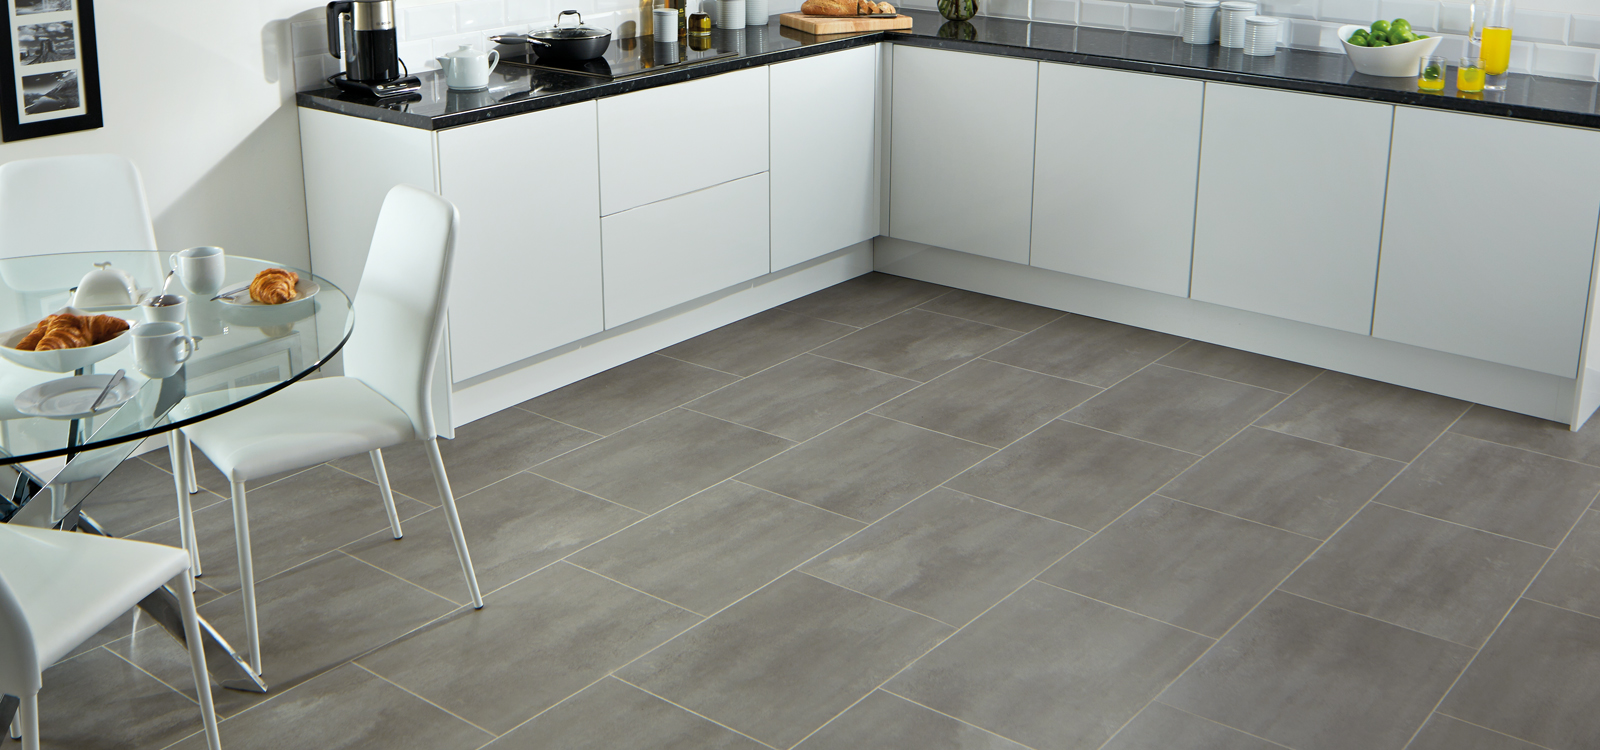 flooring for the kitchen newcastle buy beautiful floors with flooring works. Black Bedroom Furniture Sets. Home Design Ideas